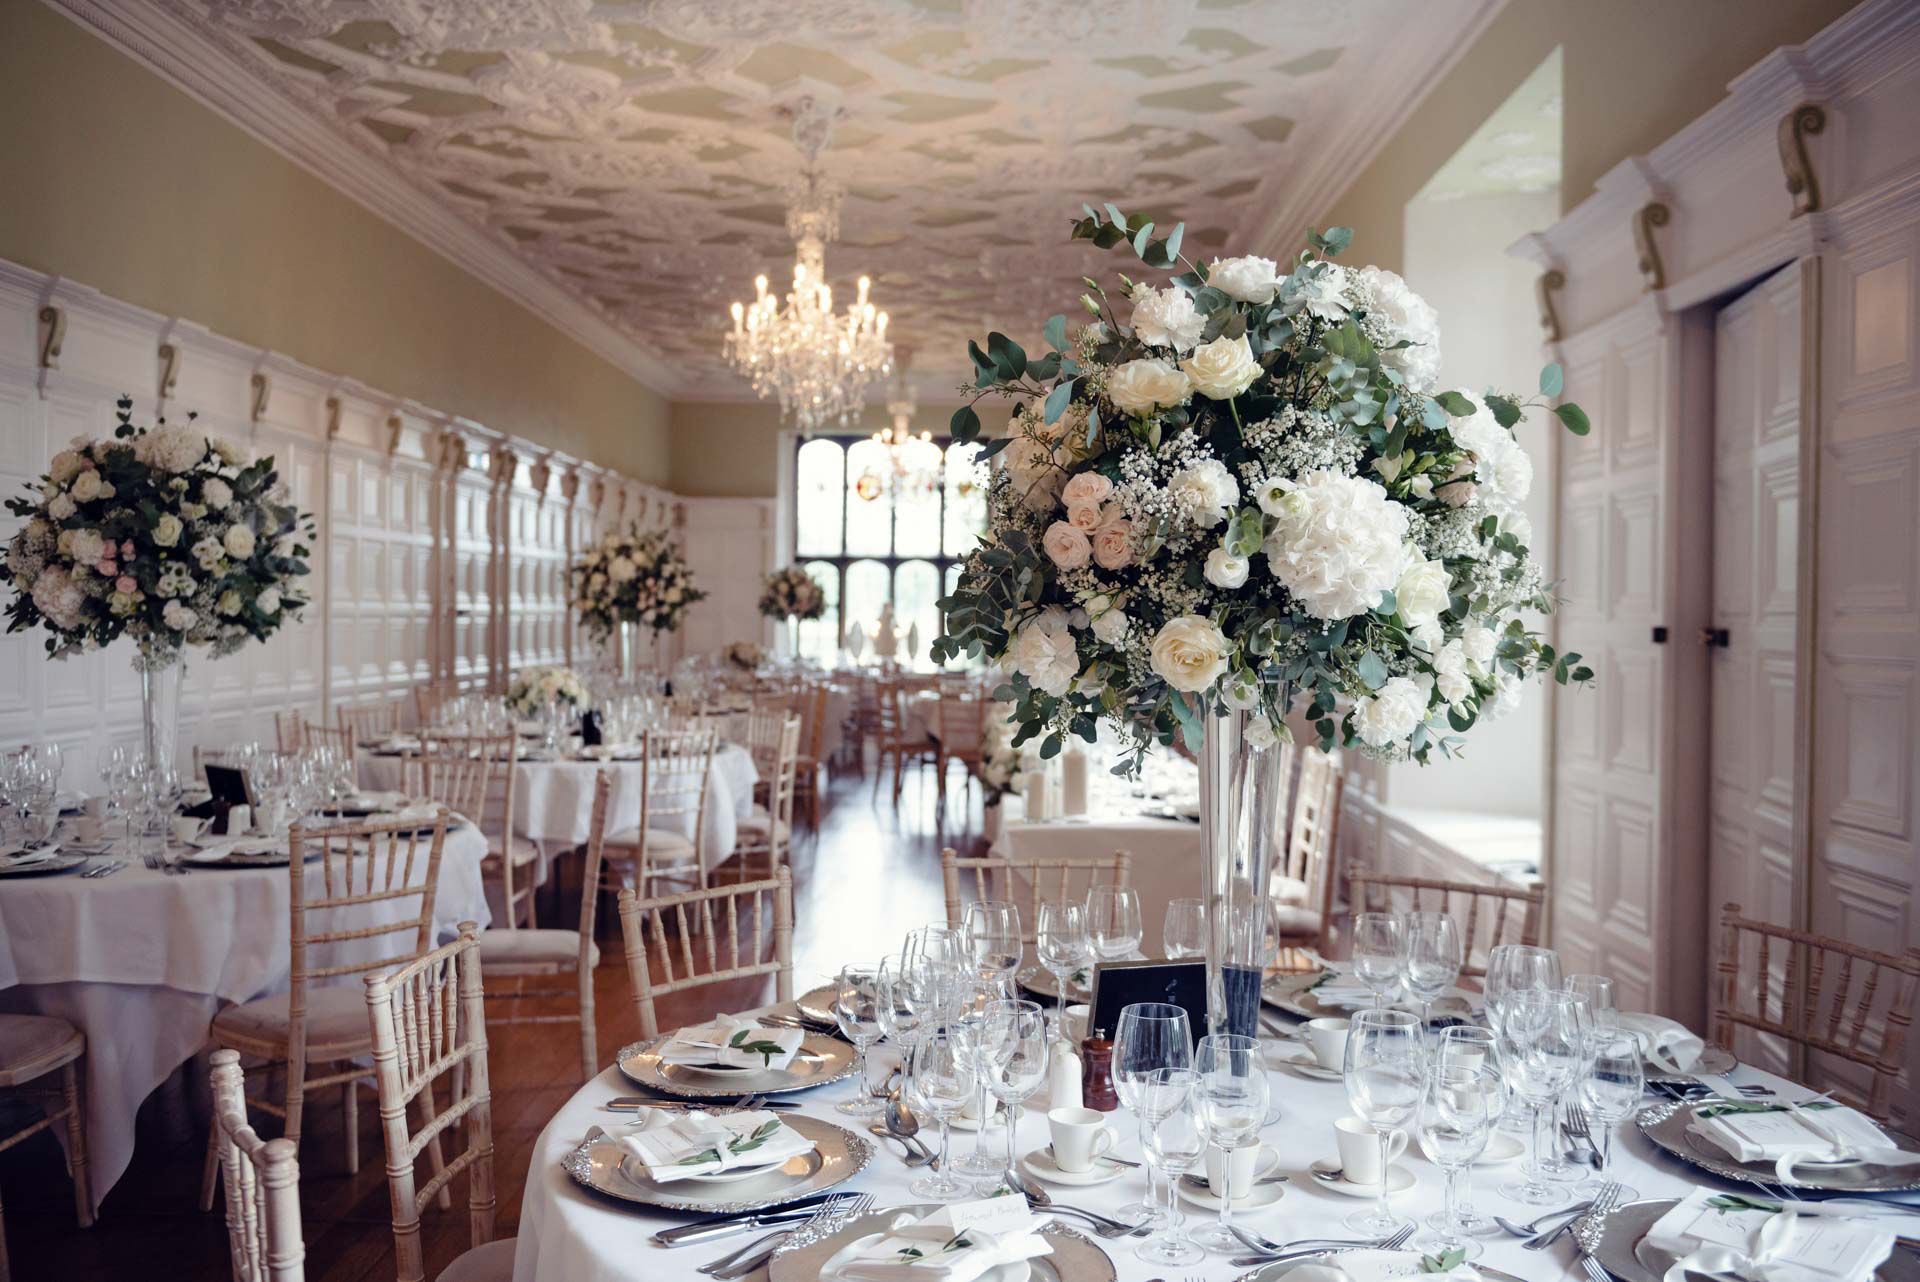 Beautifully laid tables in the banqueting Hall, with gorgeous flowers ready for a Wedding Breakfast at Hengrave Hall